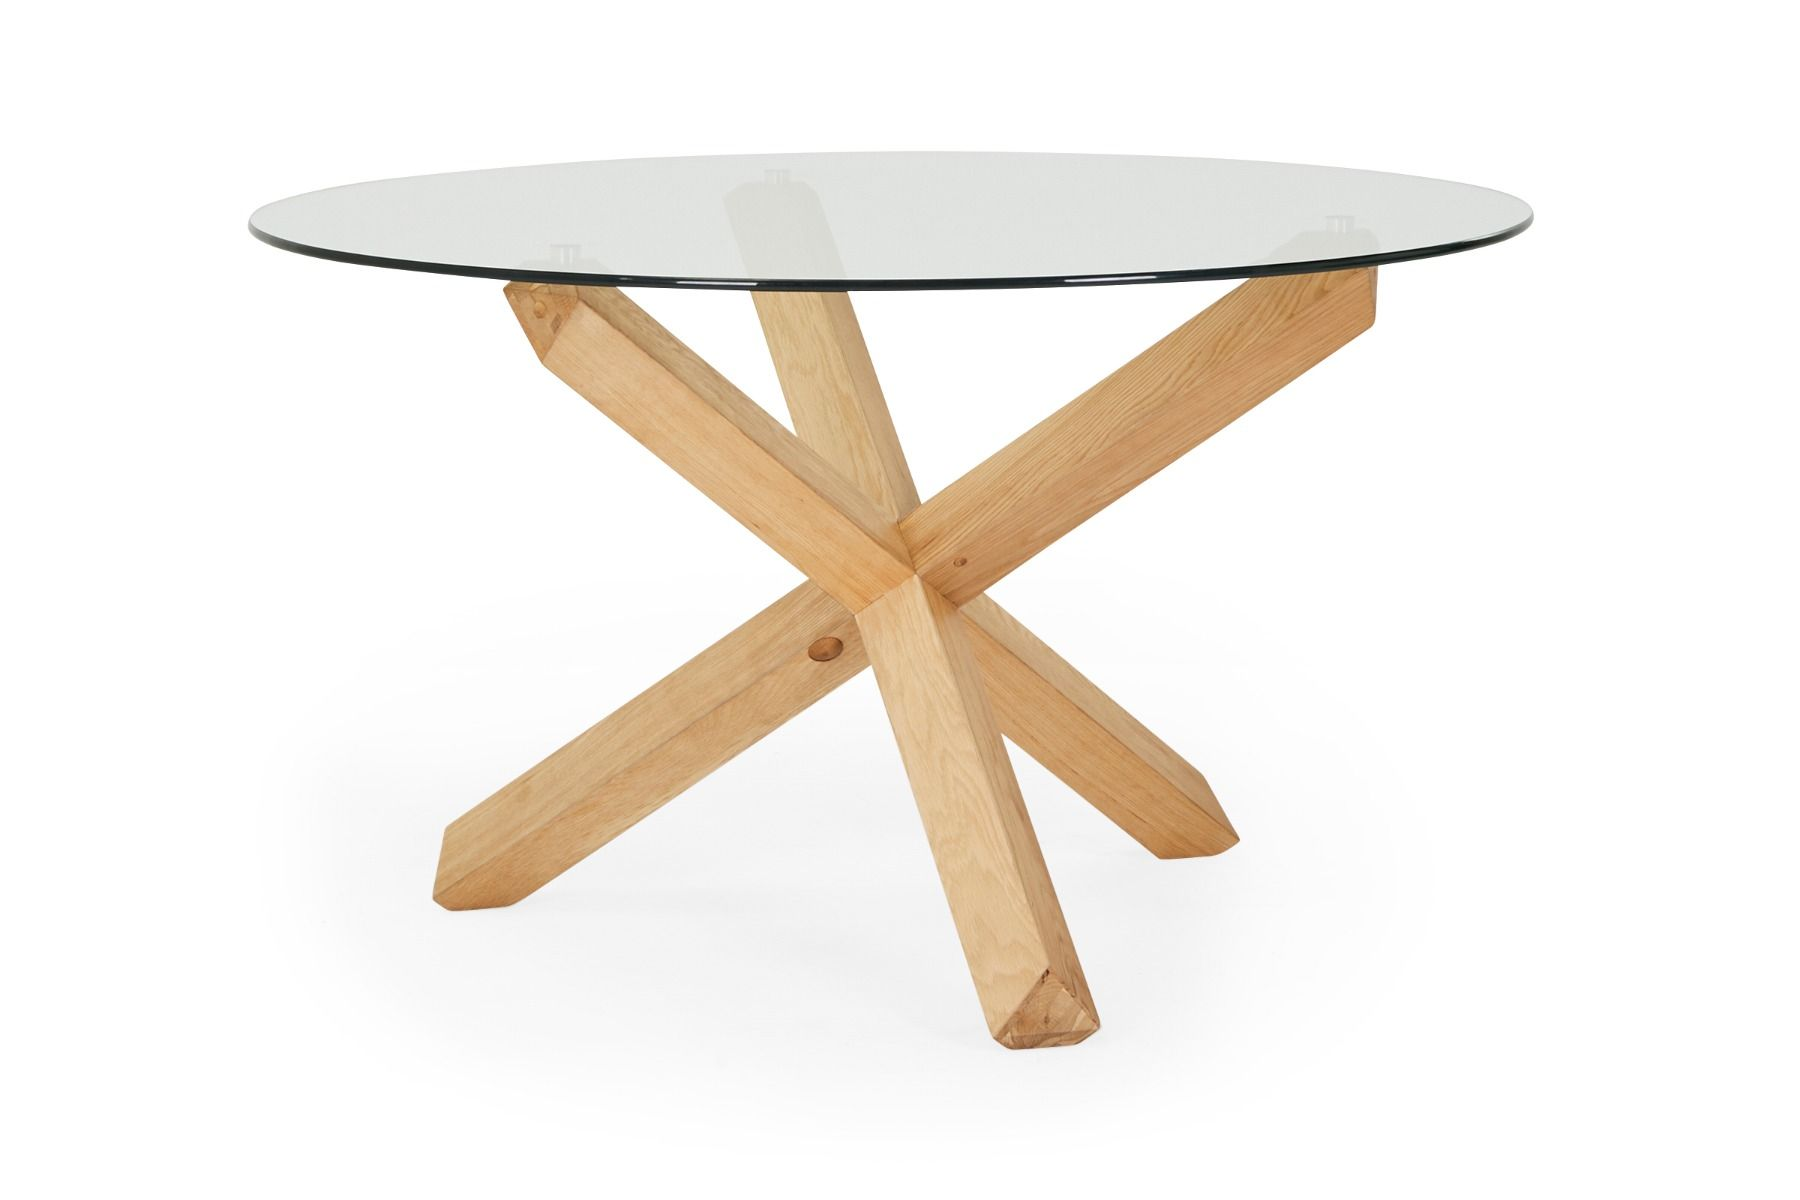 Silas Round Glass by Lounge Lovers, a Dining Tables for sale on Style Sourcebook